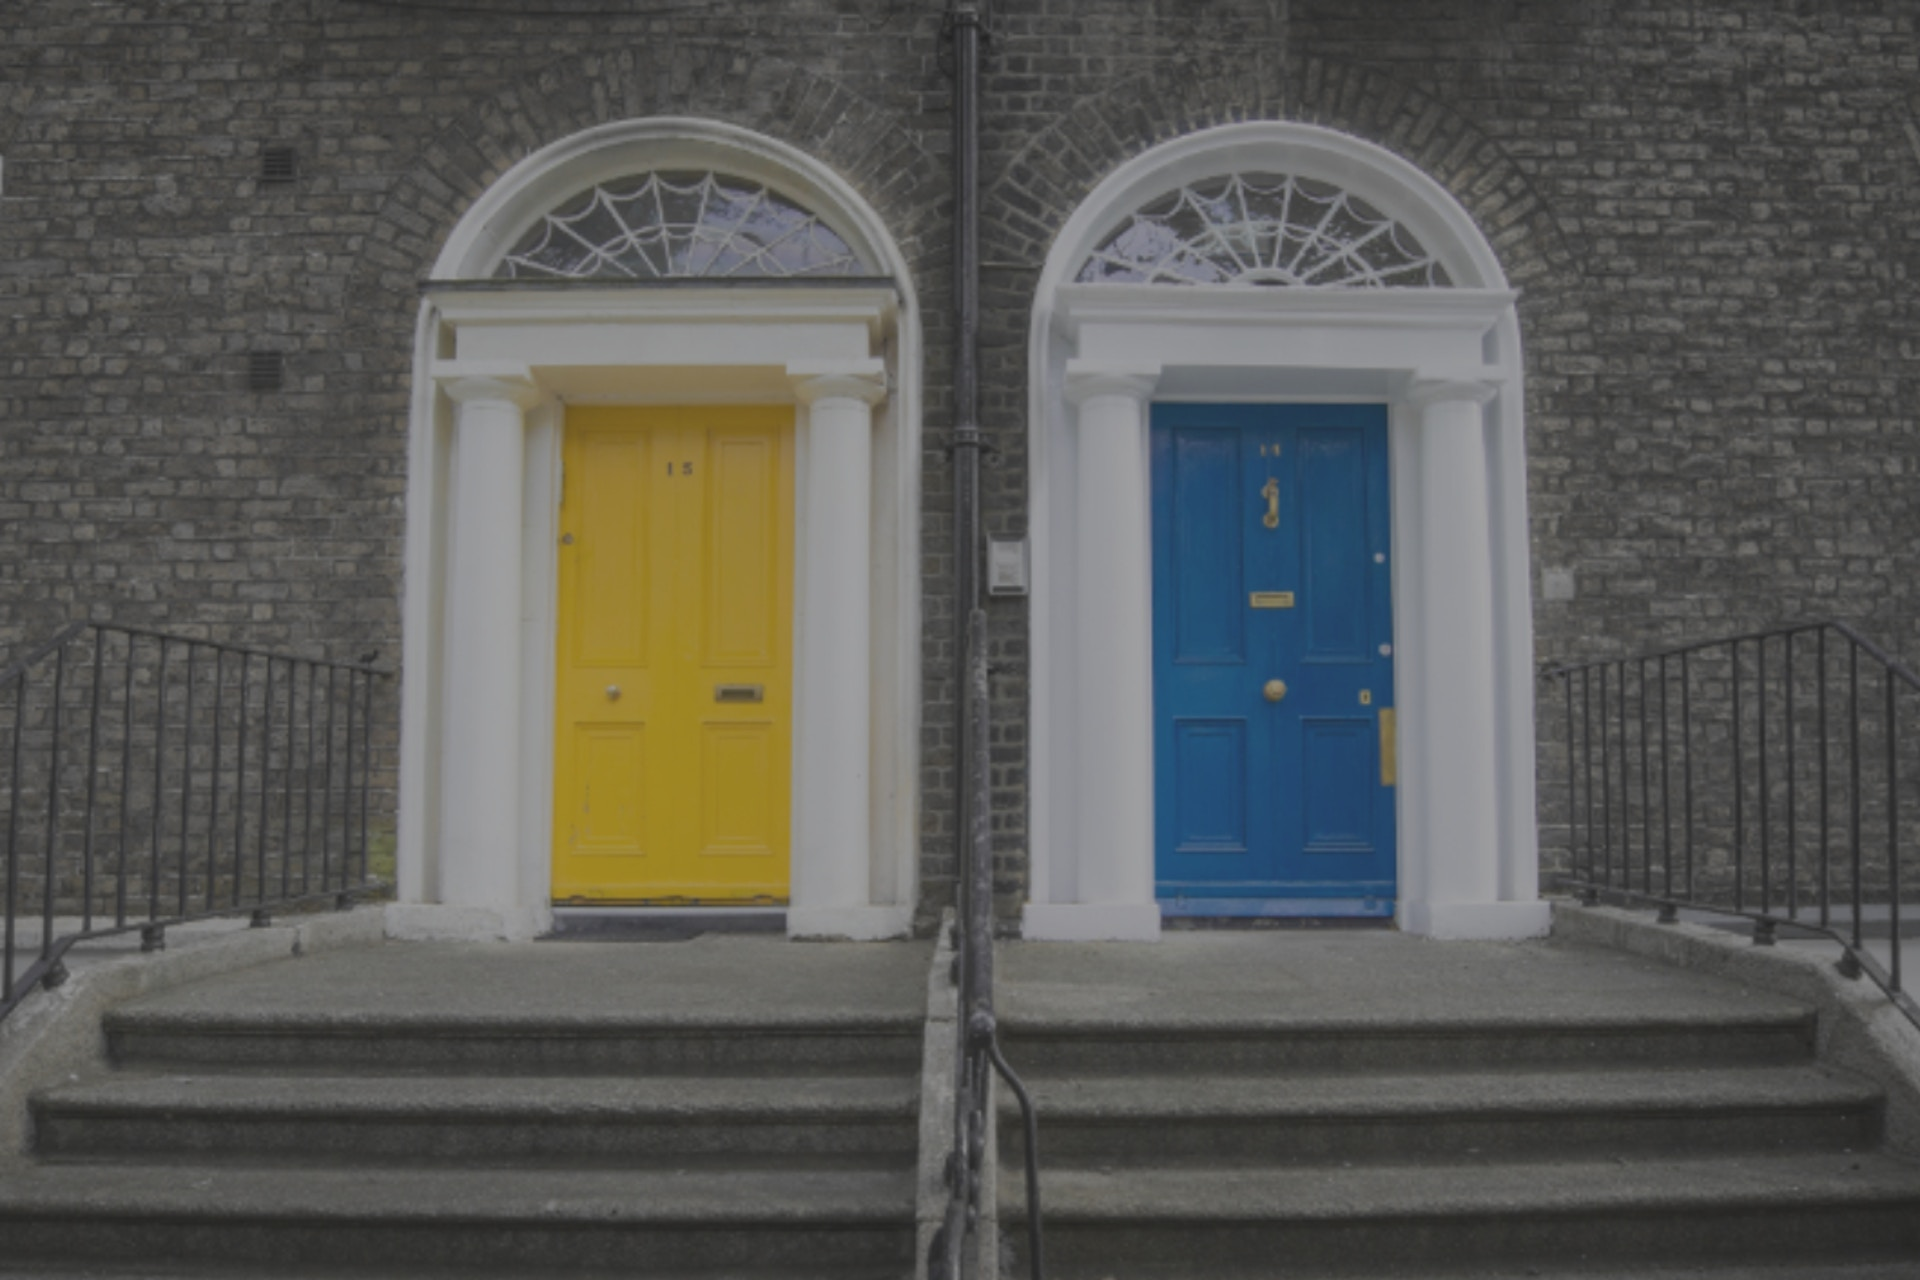 Two doors with grey steps leading up to them. One door is yellow, the other is blue.